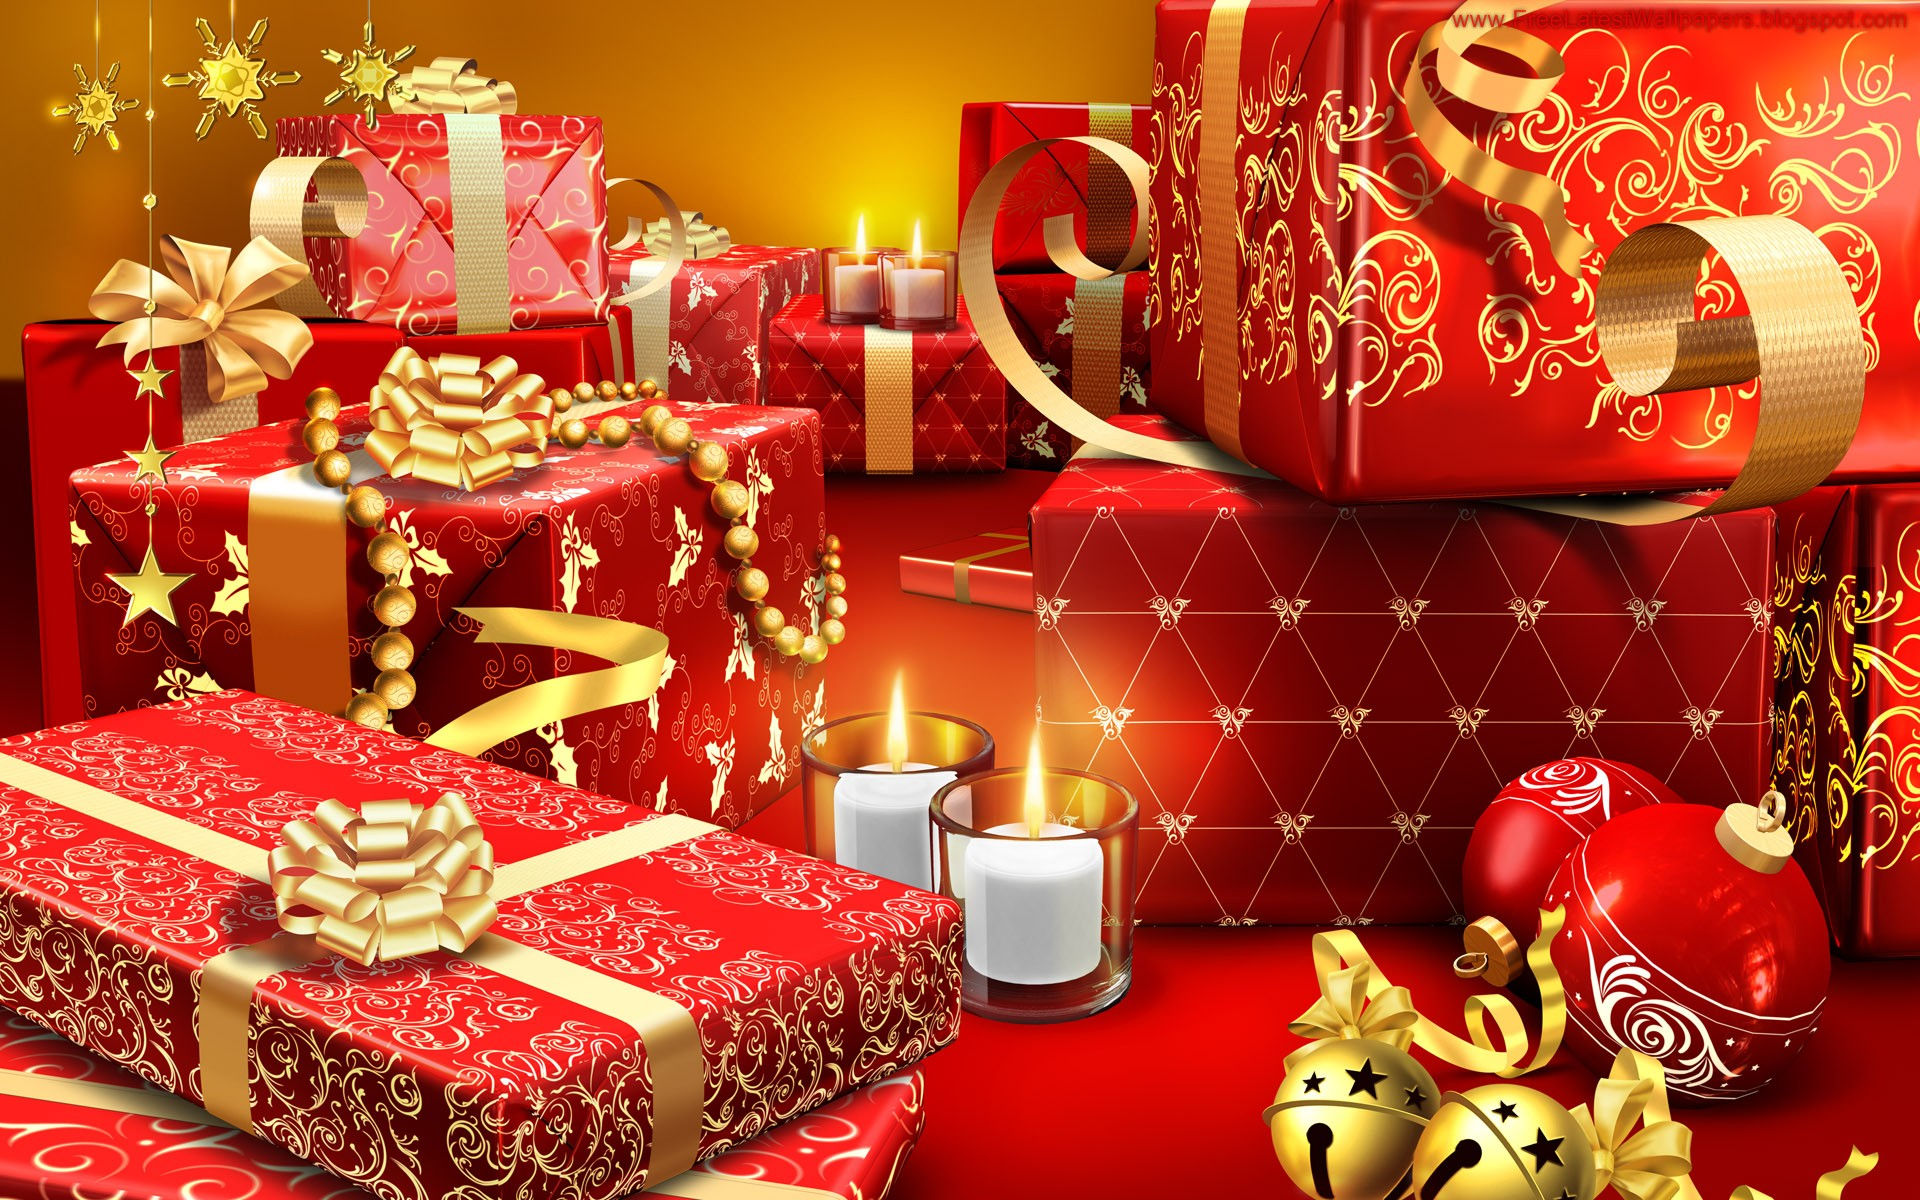 HD Christmas Wallpaper Widescreen